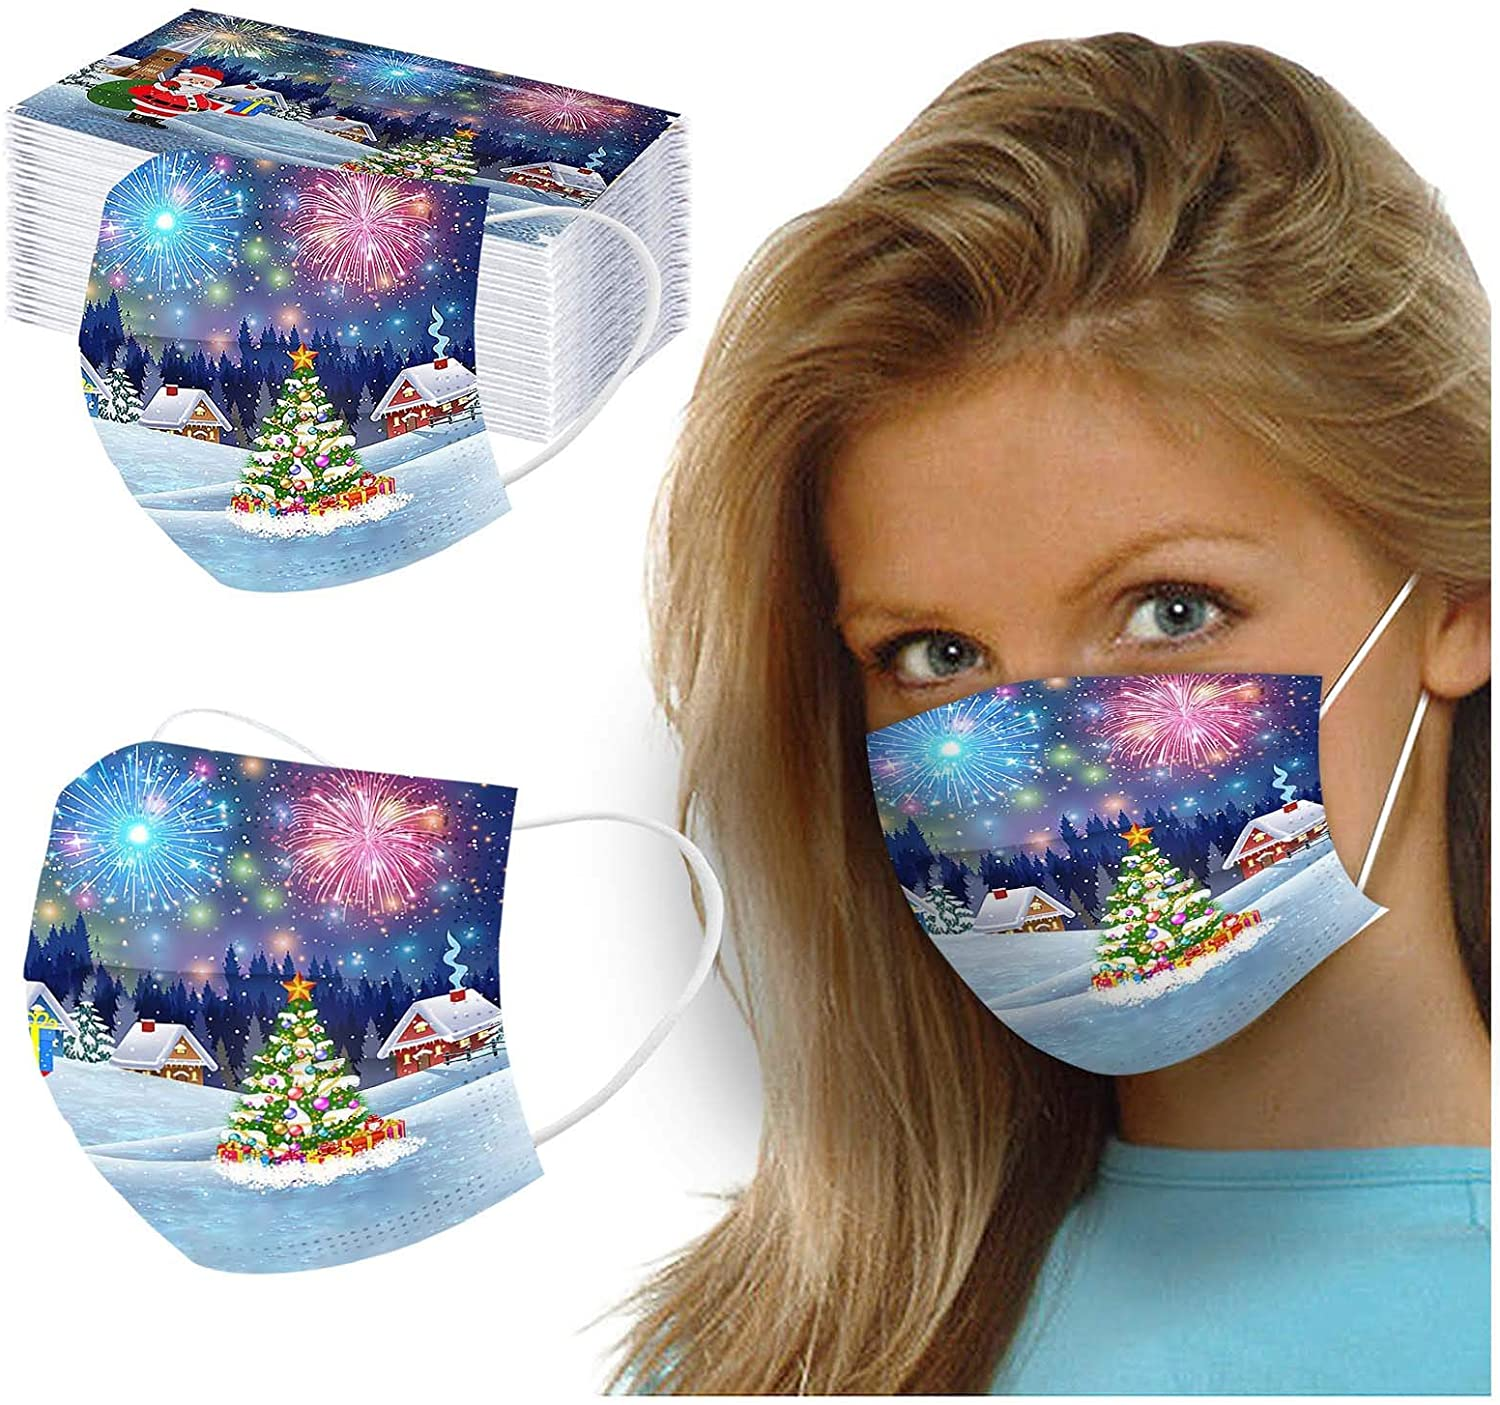 HheJIshirc 10/50PC Christmas Disposable Unisex Mask for Face,Dust-Proof Breathable Printed Fireworks Christmas Tree Mask,3 Ply Non-Woven Mask for Adult